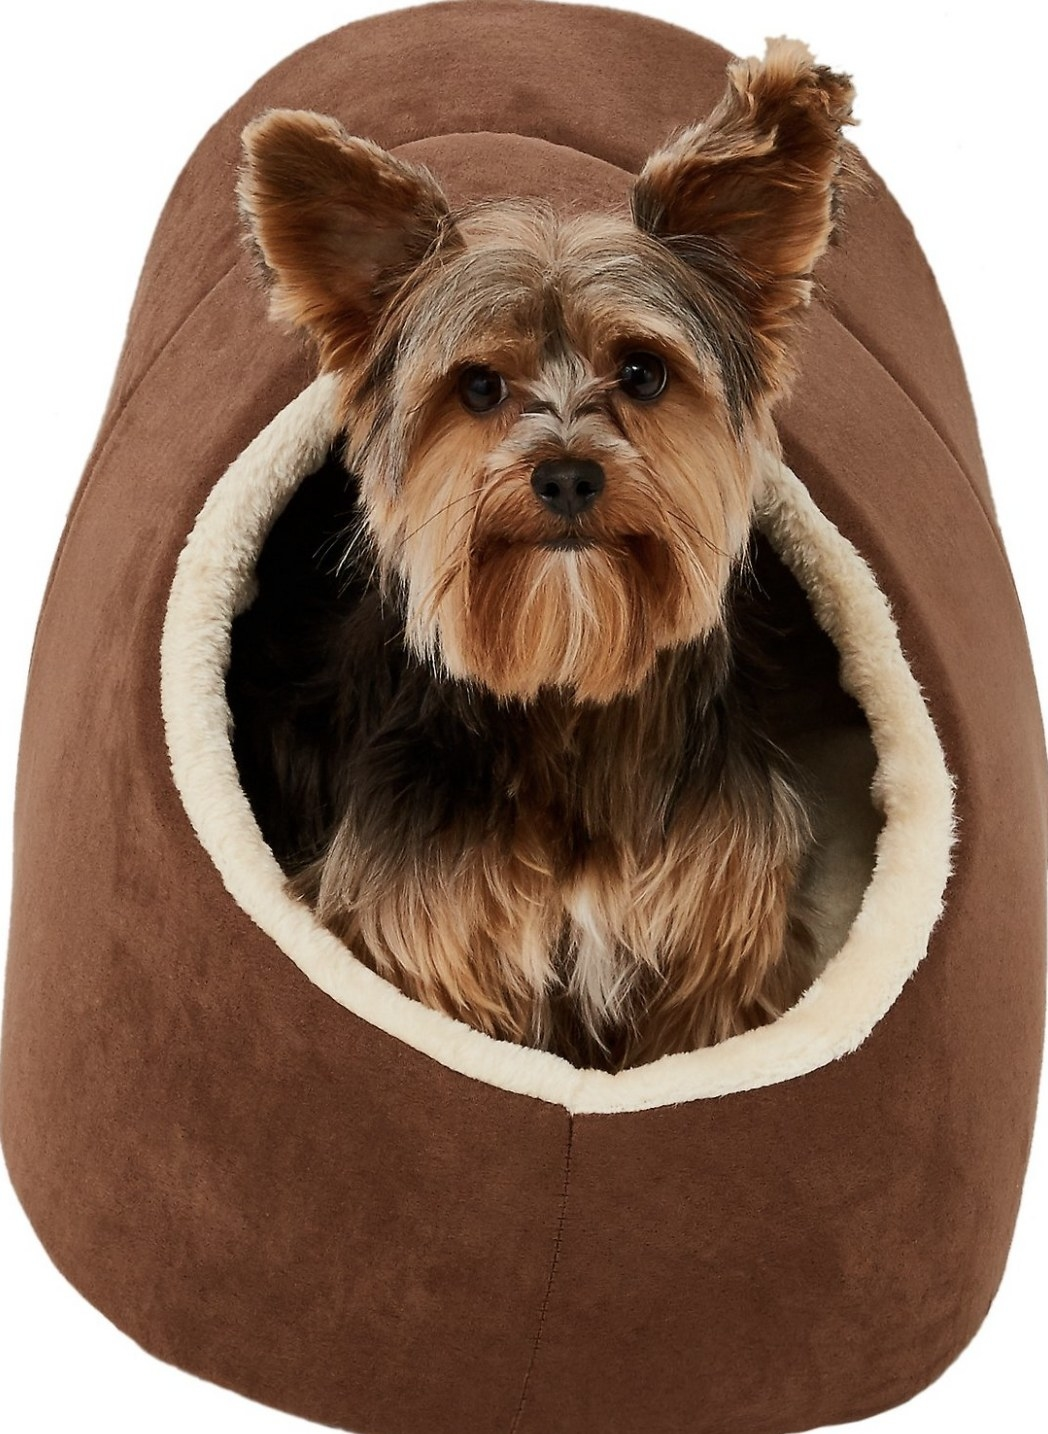 A dog inside a cave bed